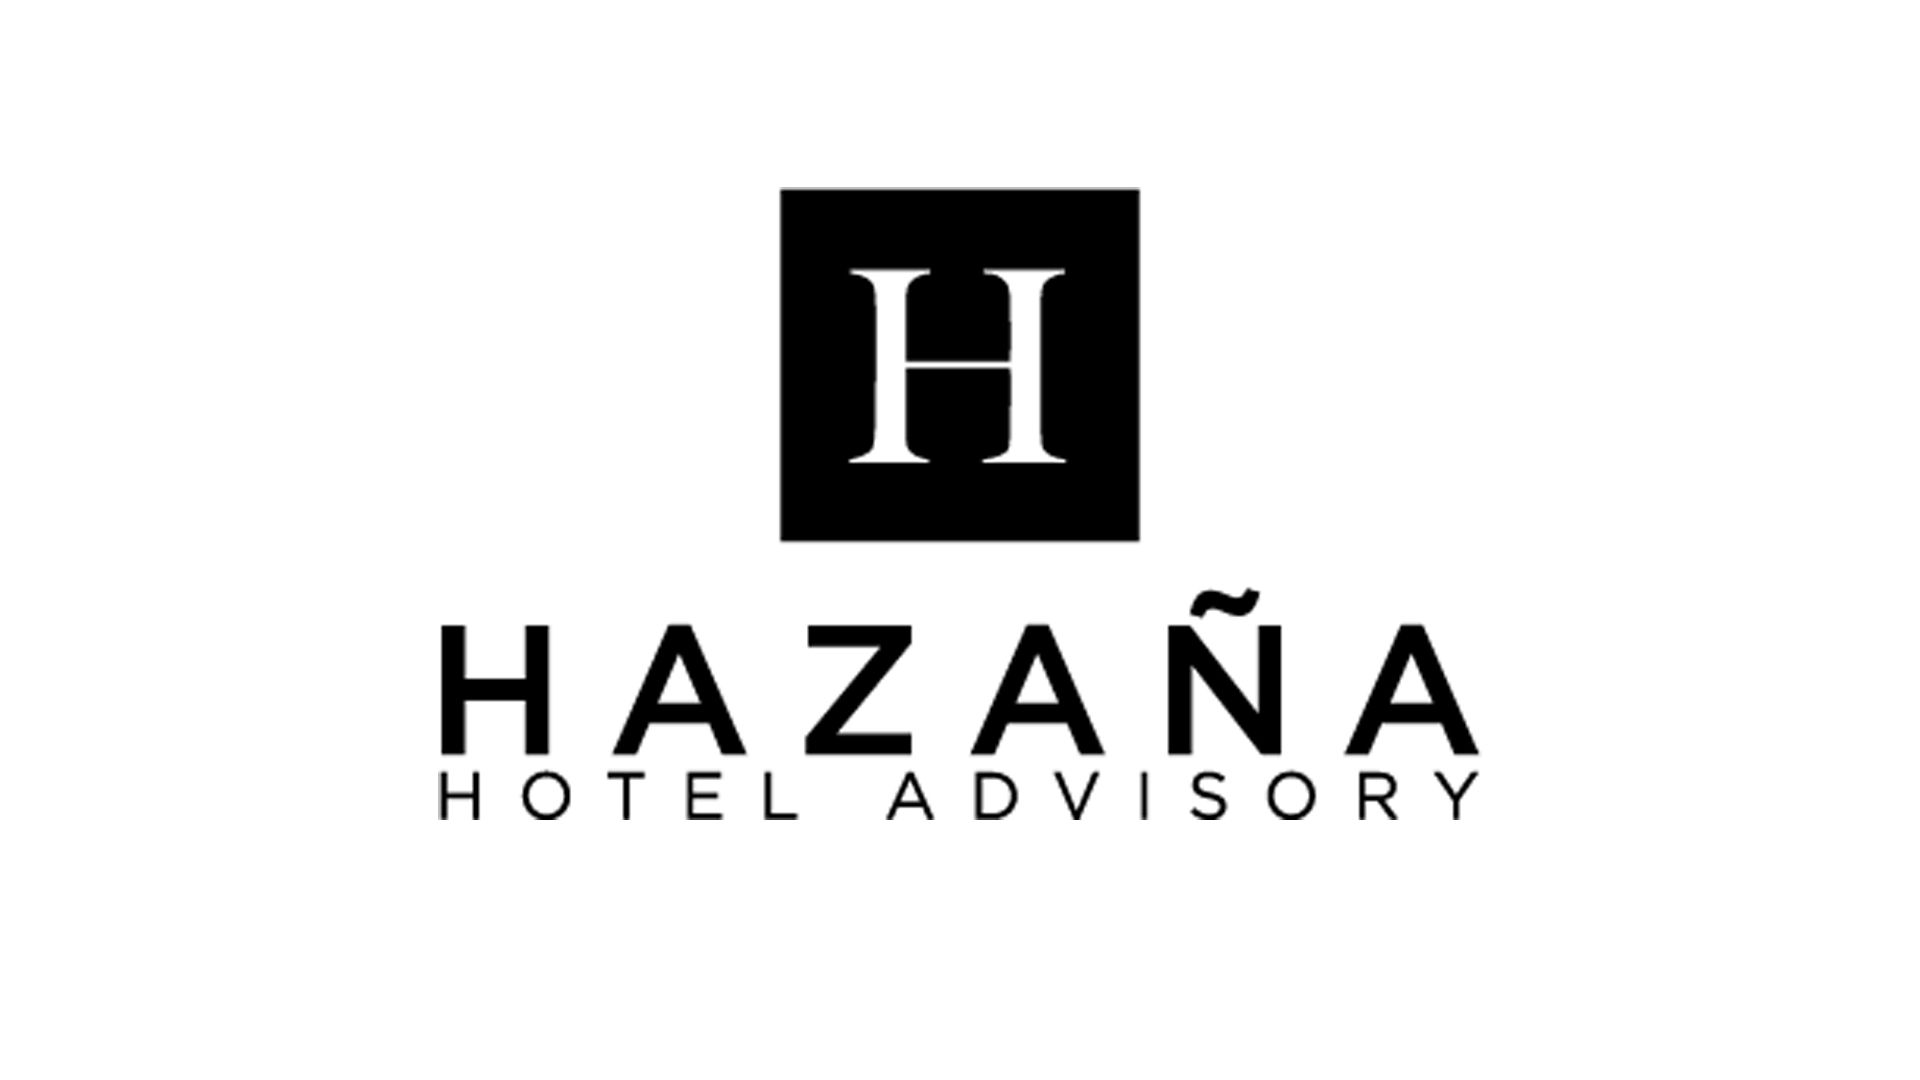 Hazaña Hotel Advisory Launches in Asia Pacific and the Middle East